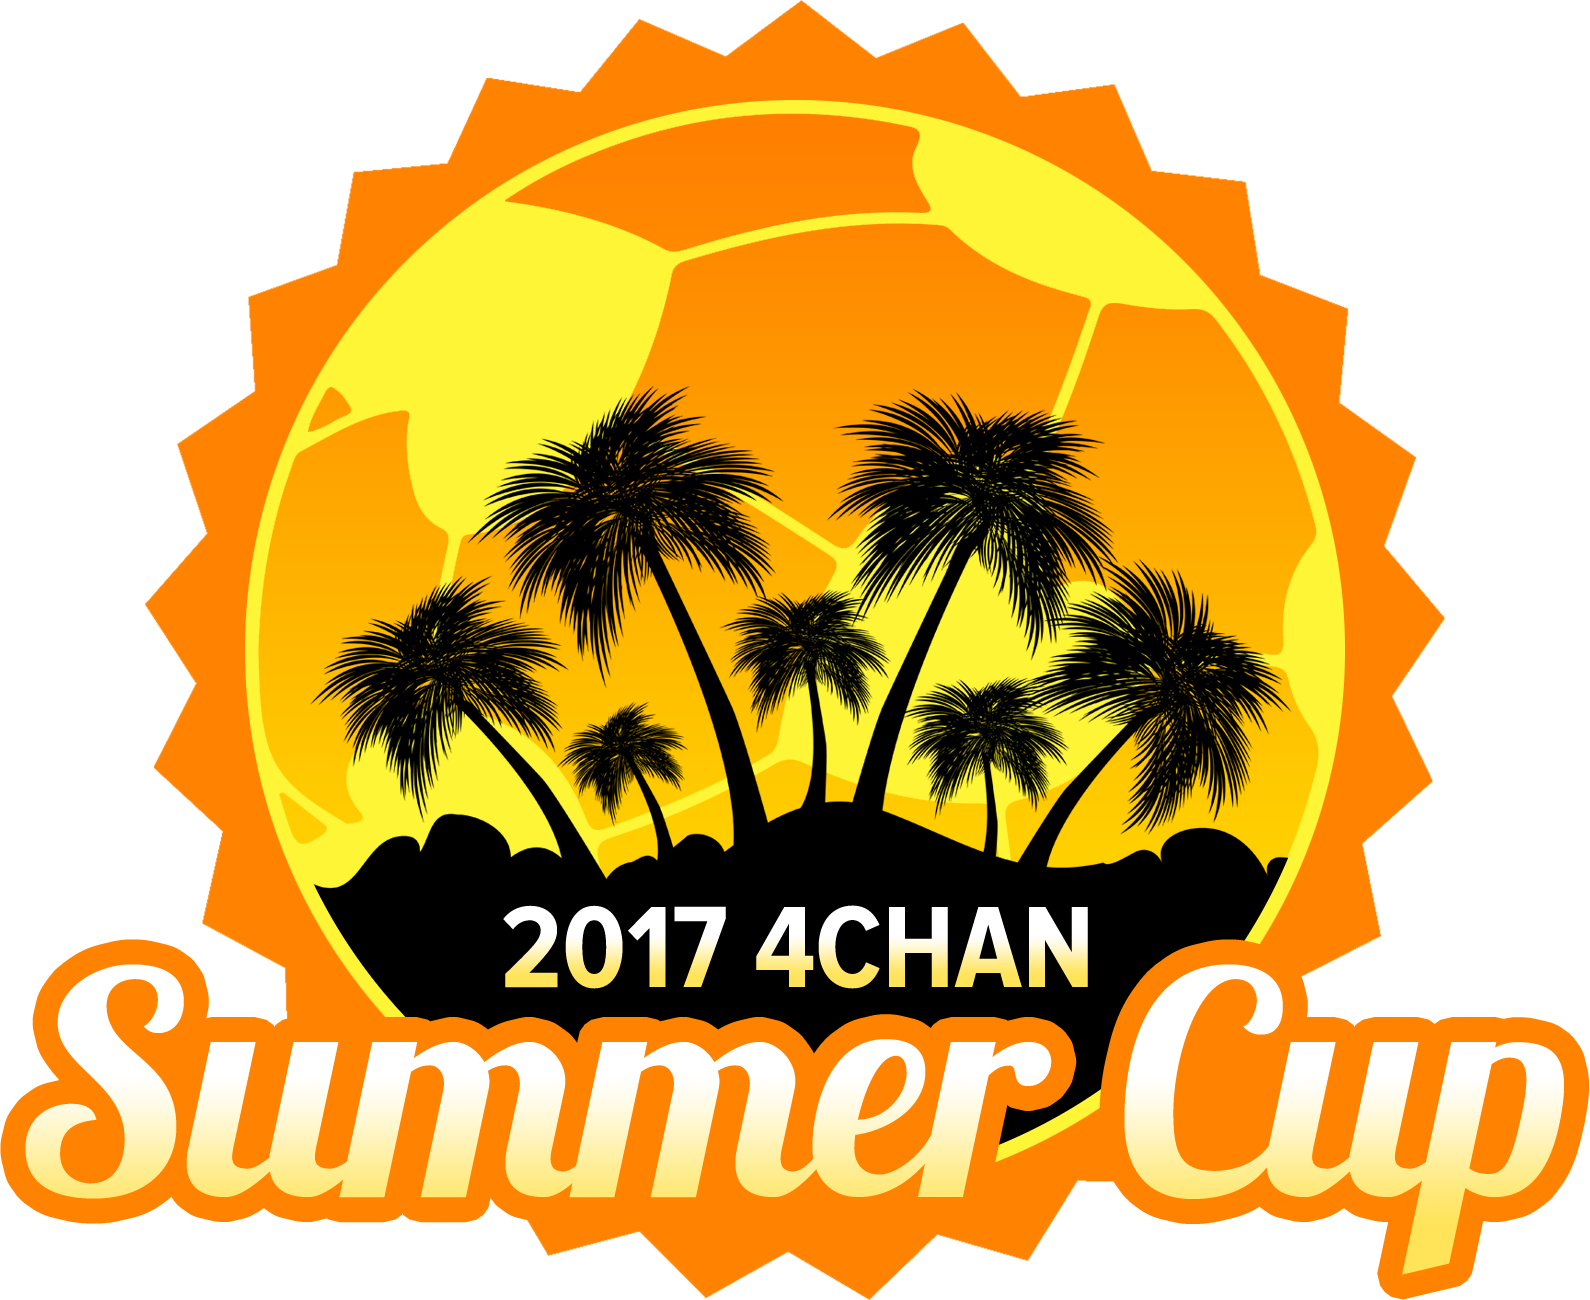 2017 4chan Summer Cup